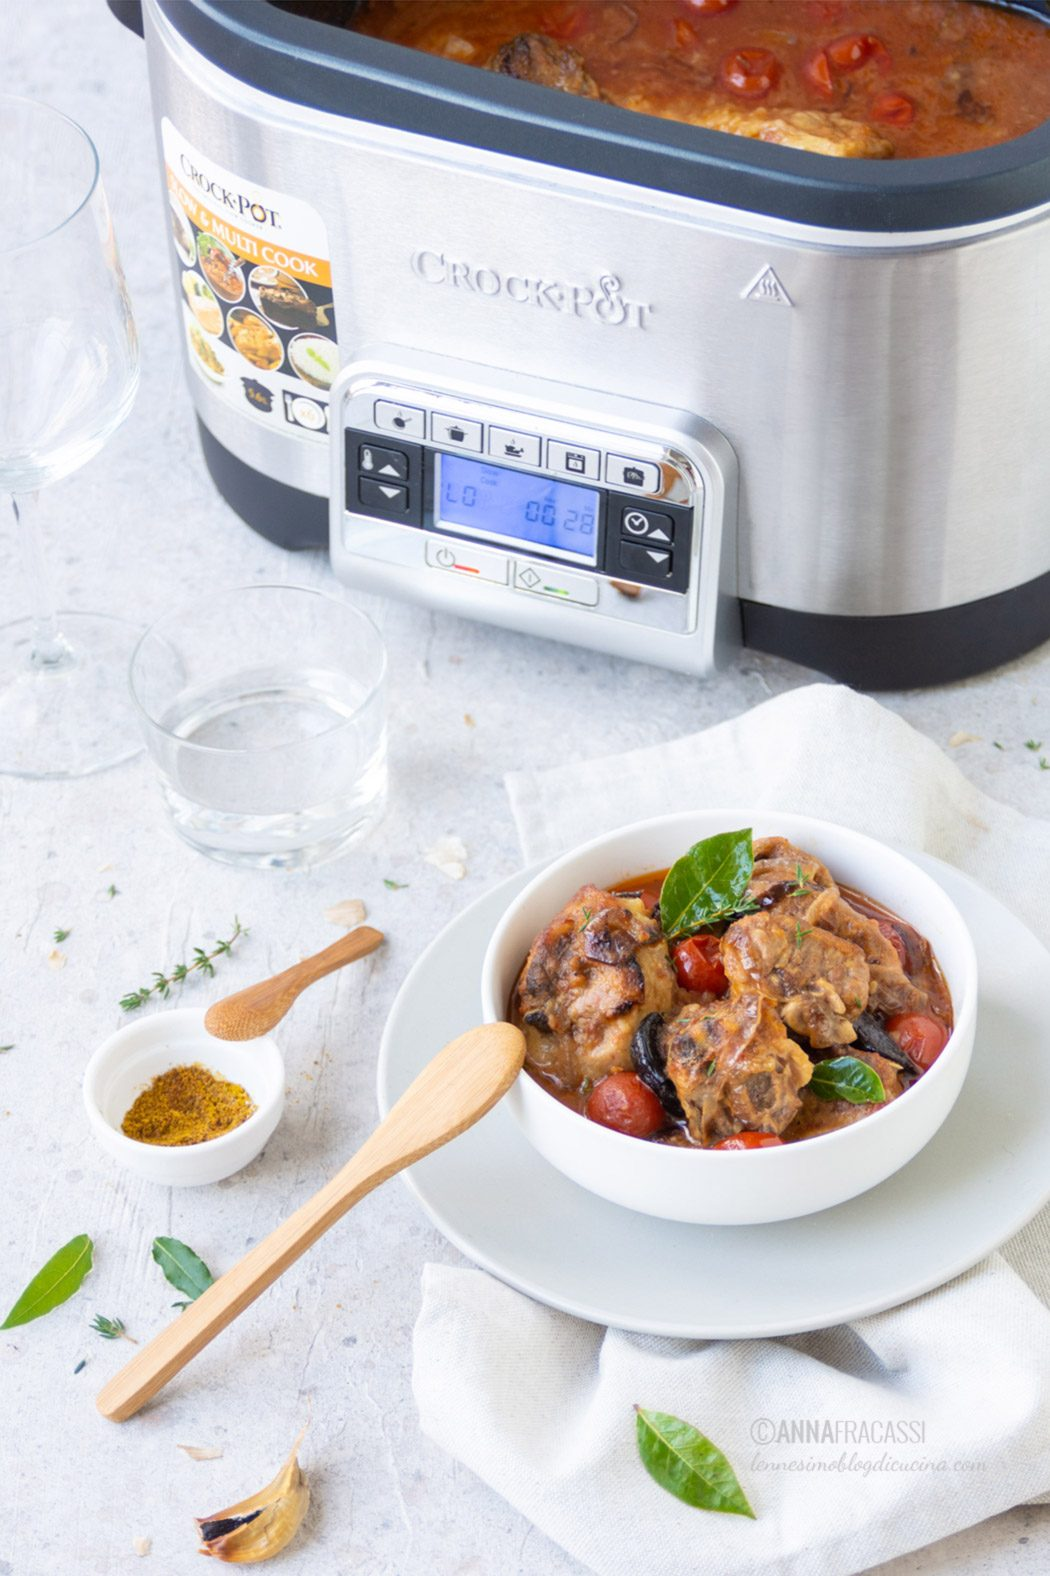 Stufato d'agnello alla persiana con Crock-Pot Slow Cooker